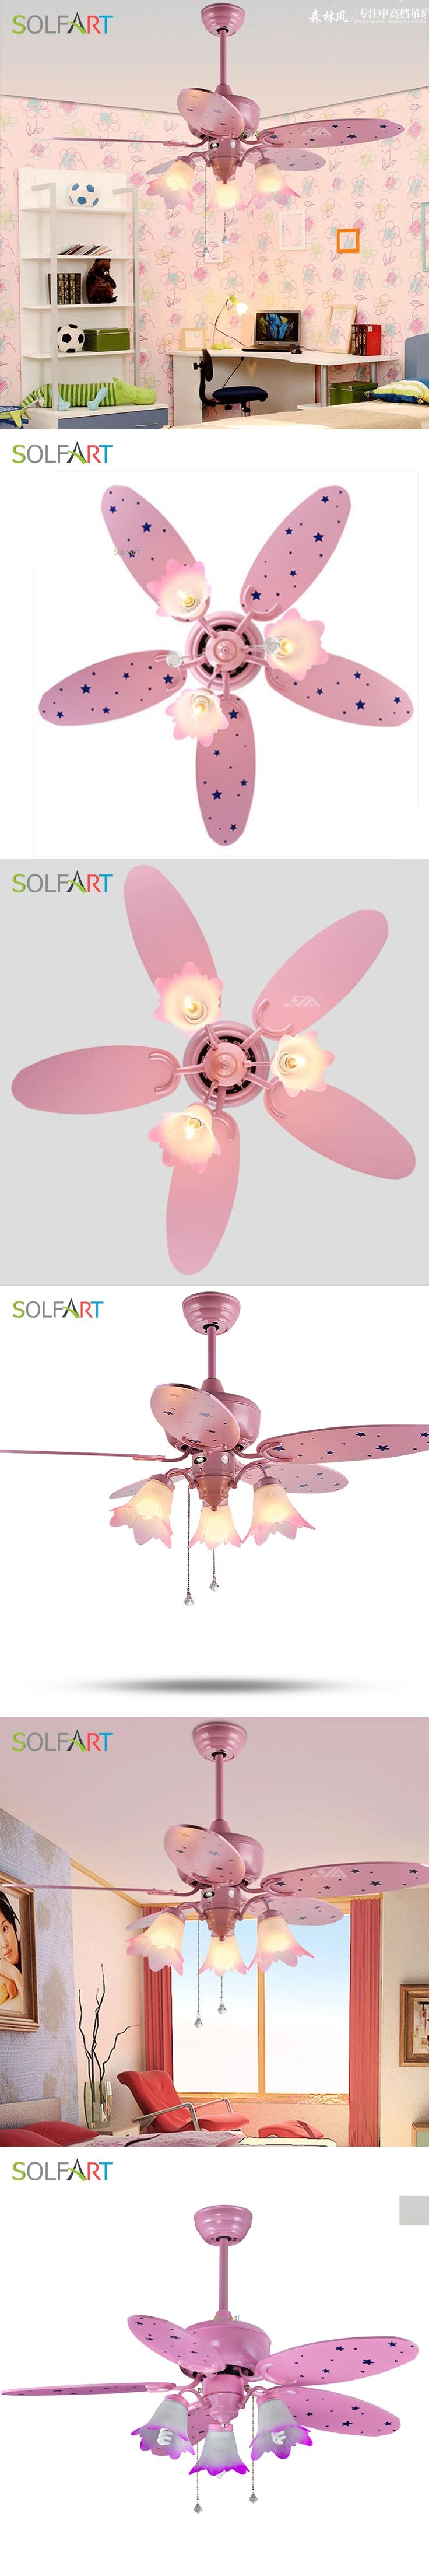 SOLFART ceiling fan remote control mute and security save energy kids room led ceiling fan lamp pink ceiling fans slf2018